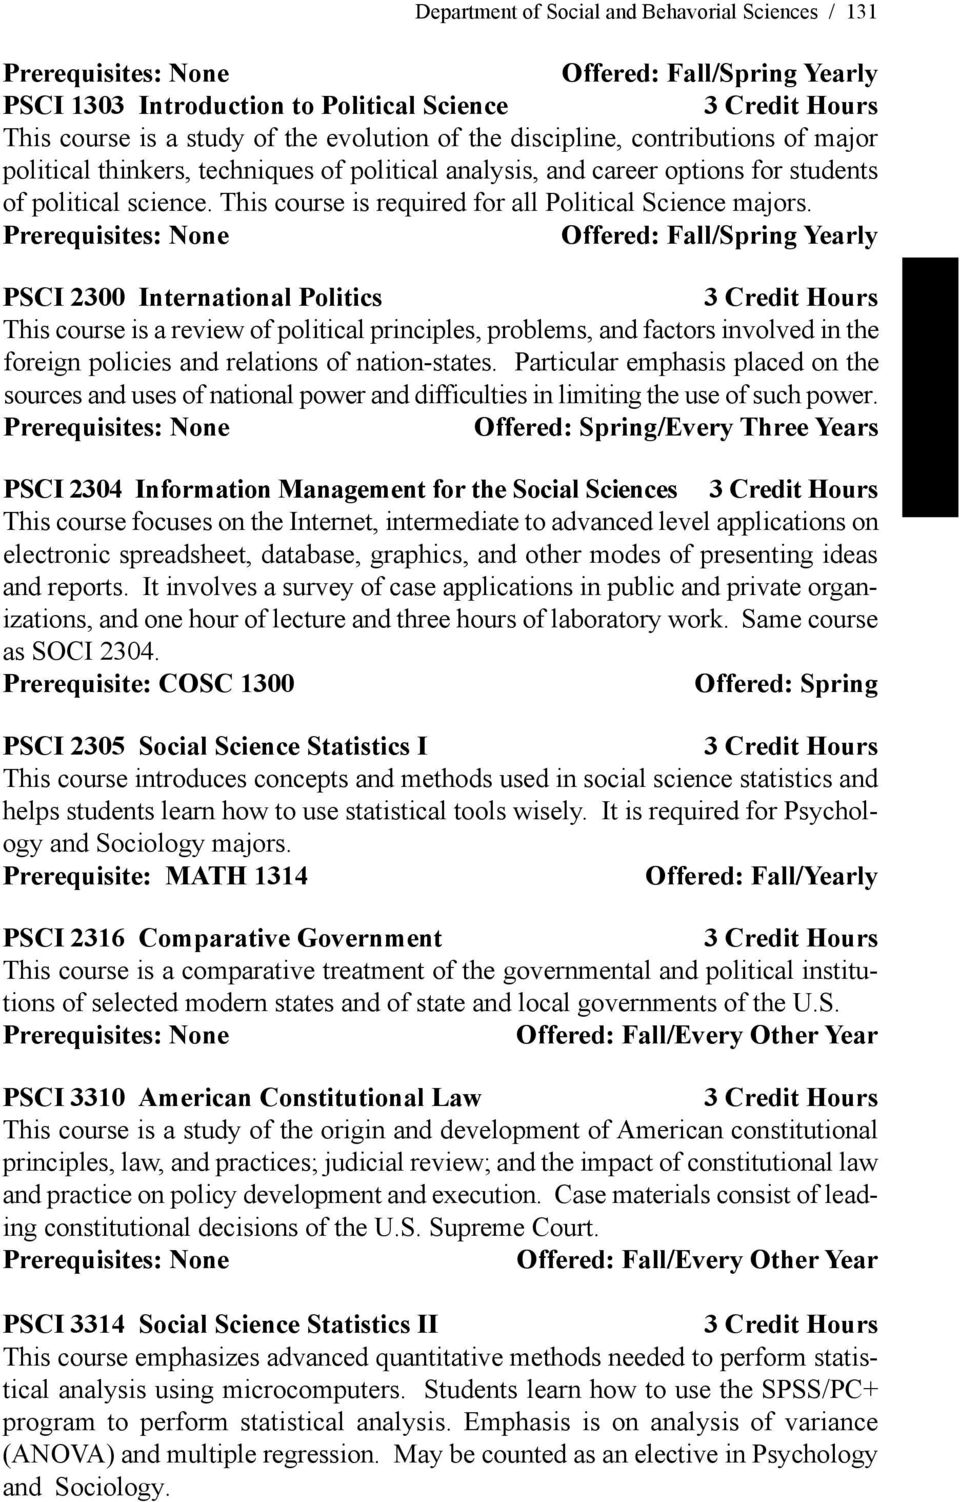 THE BACHELOR OF ARTS DEGREE IN POLITICAL SCIENCE (PSCI) - PDF